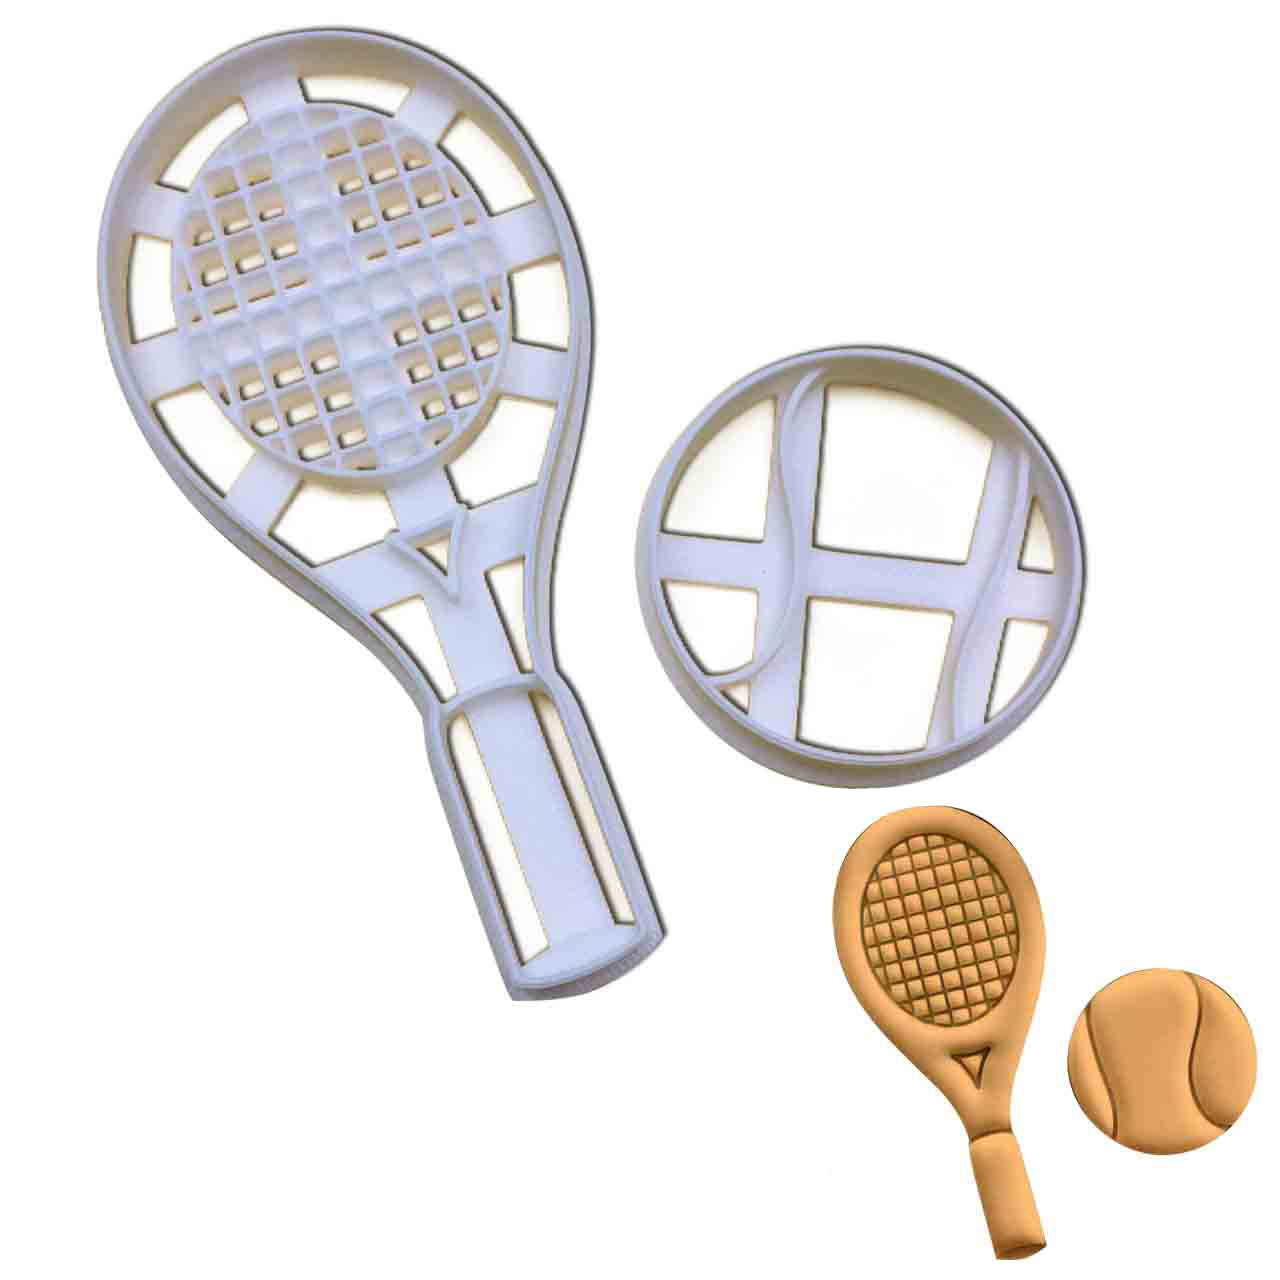 set of tennis racket and tennis ball cookie cutters pressed on fondant